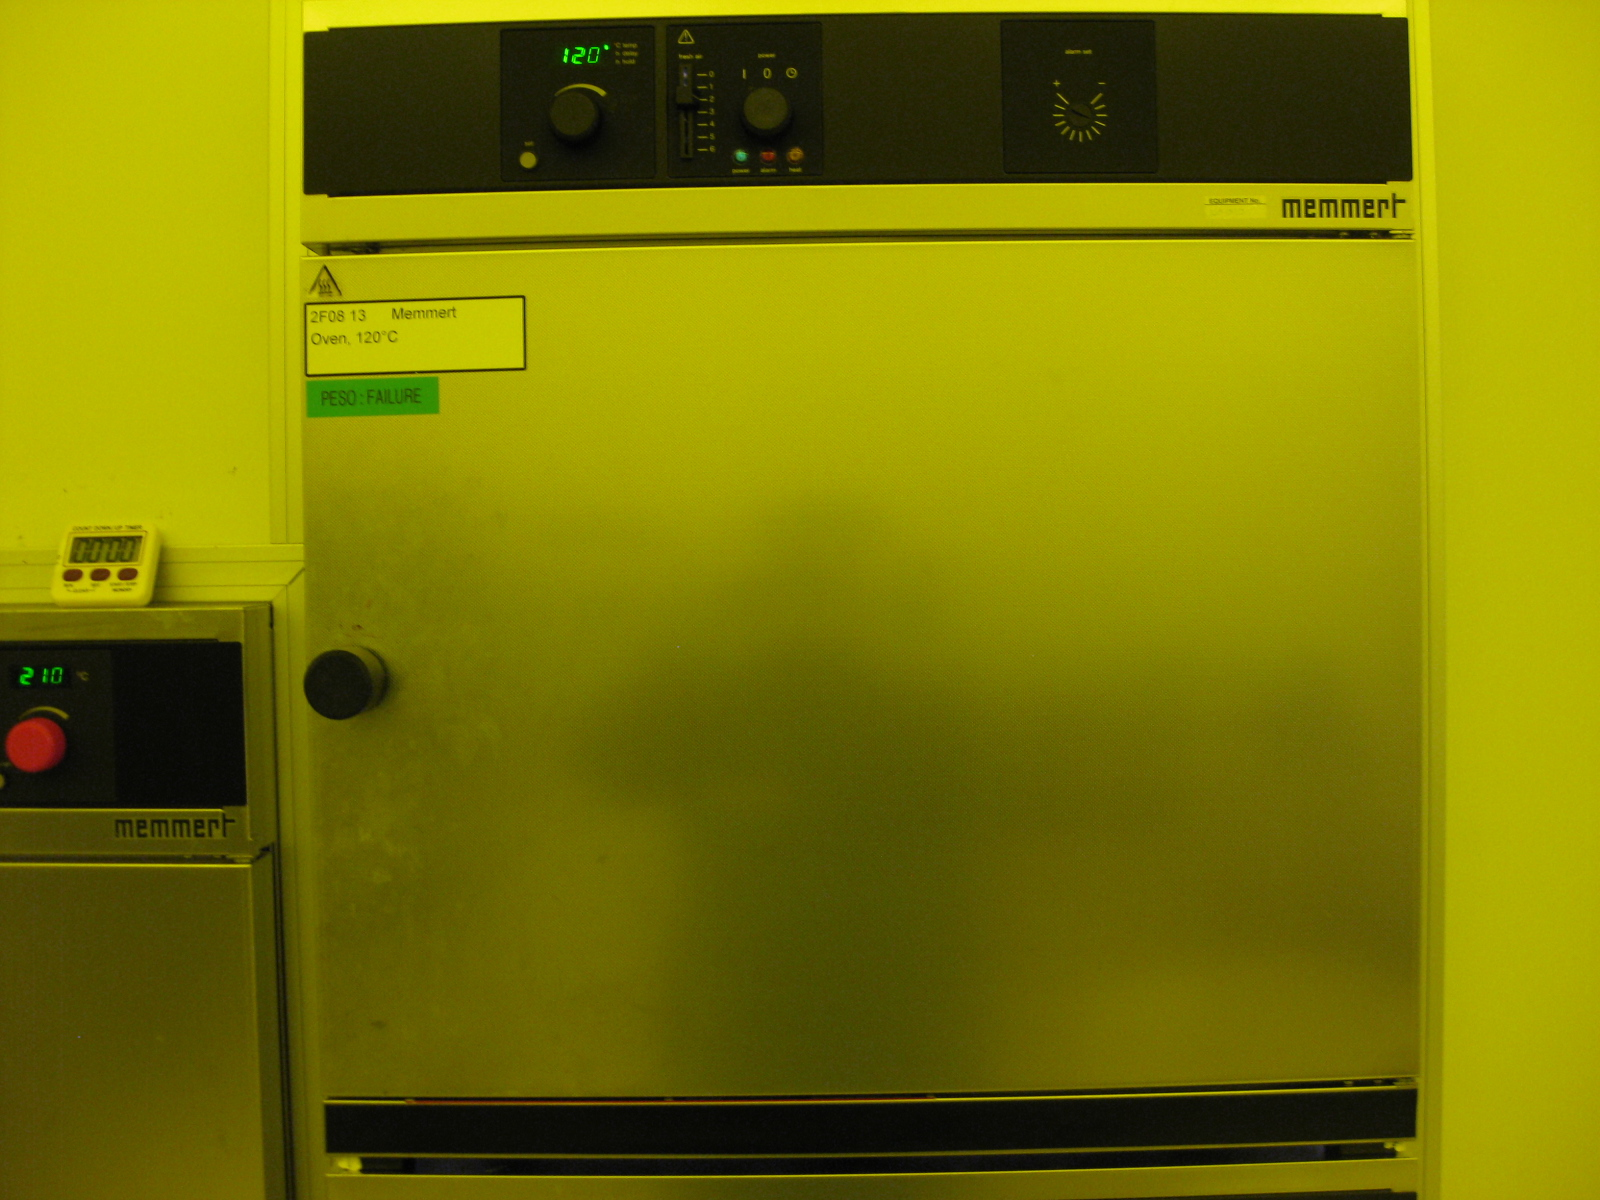 Picture of Oven 120